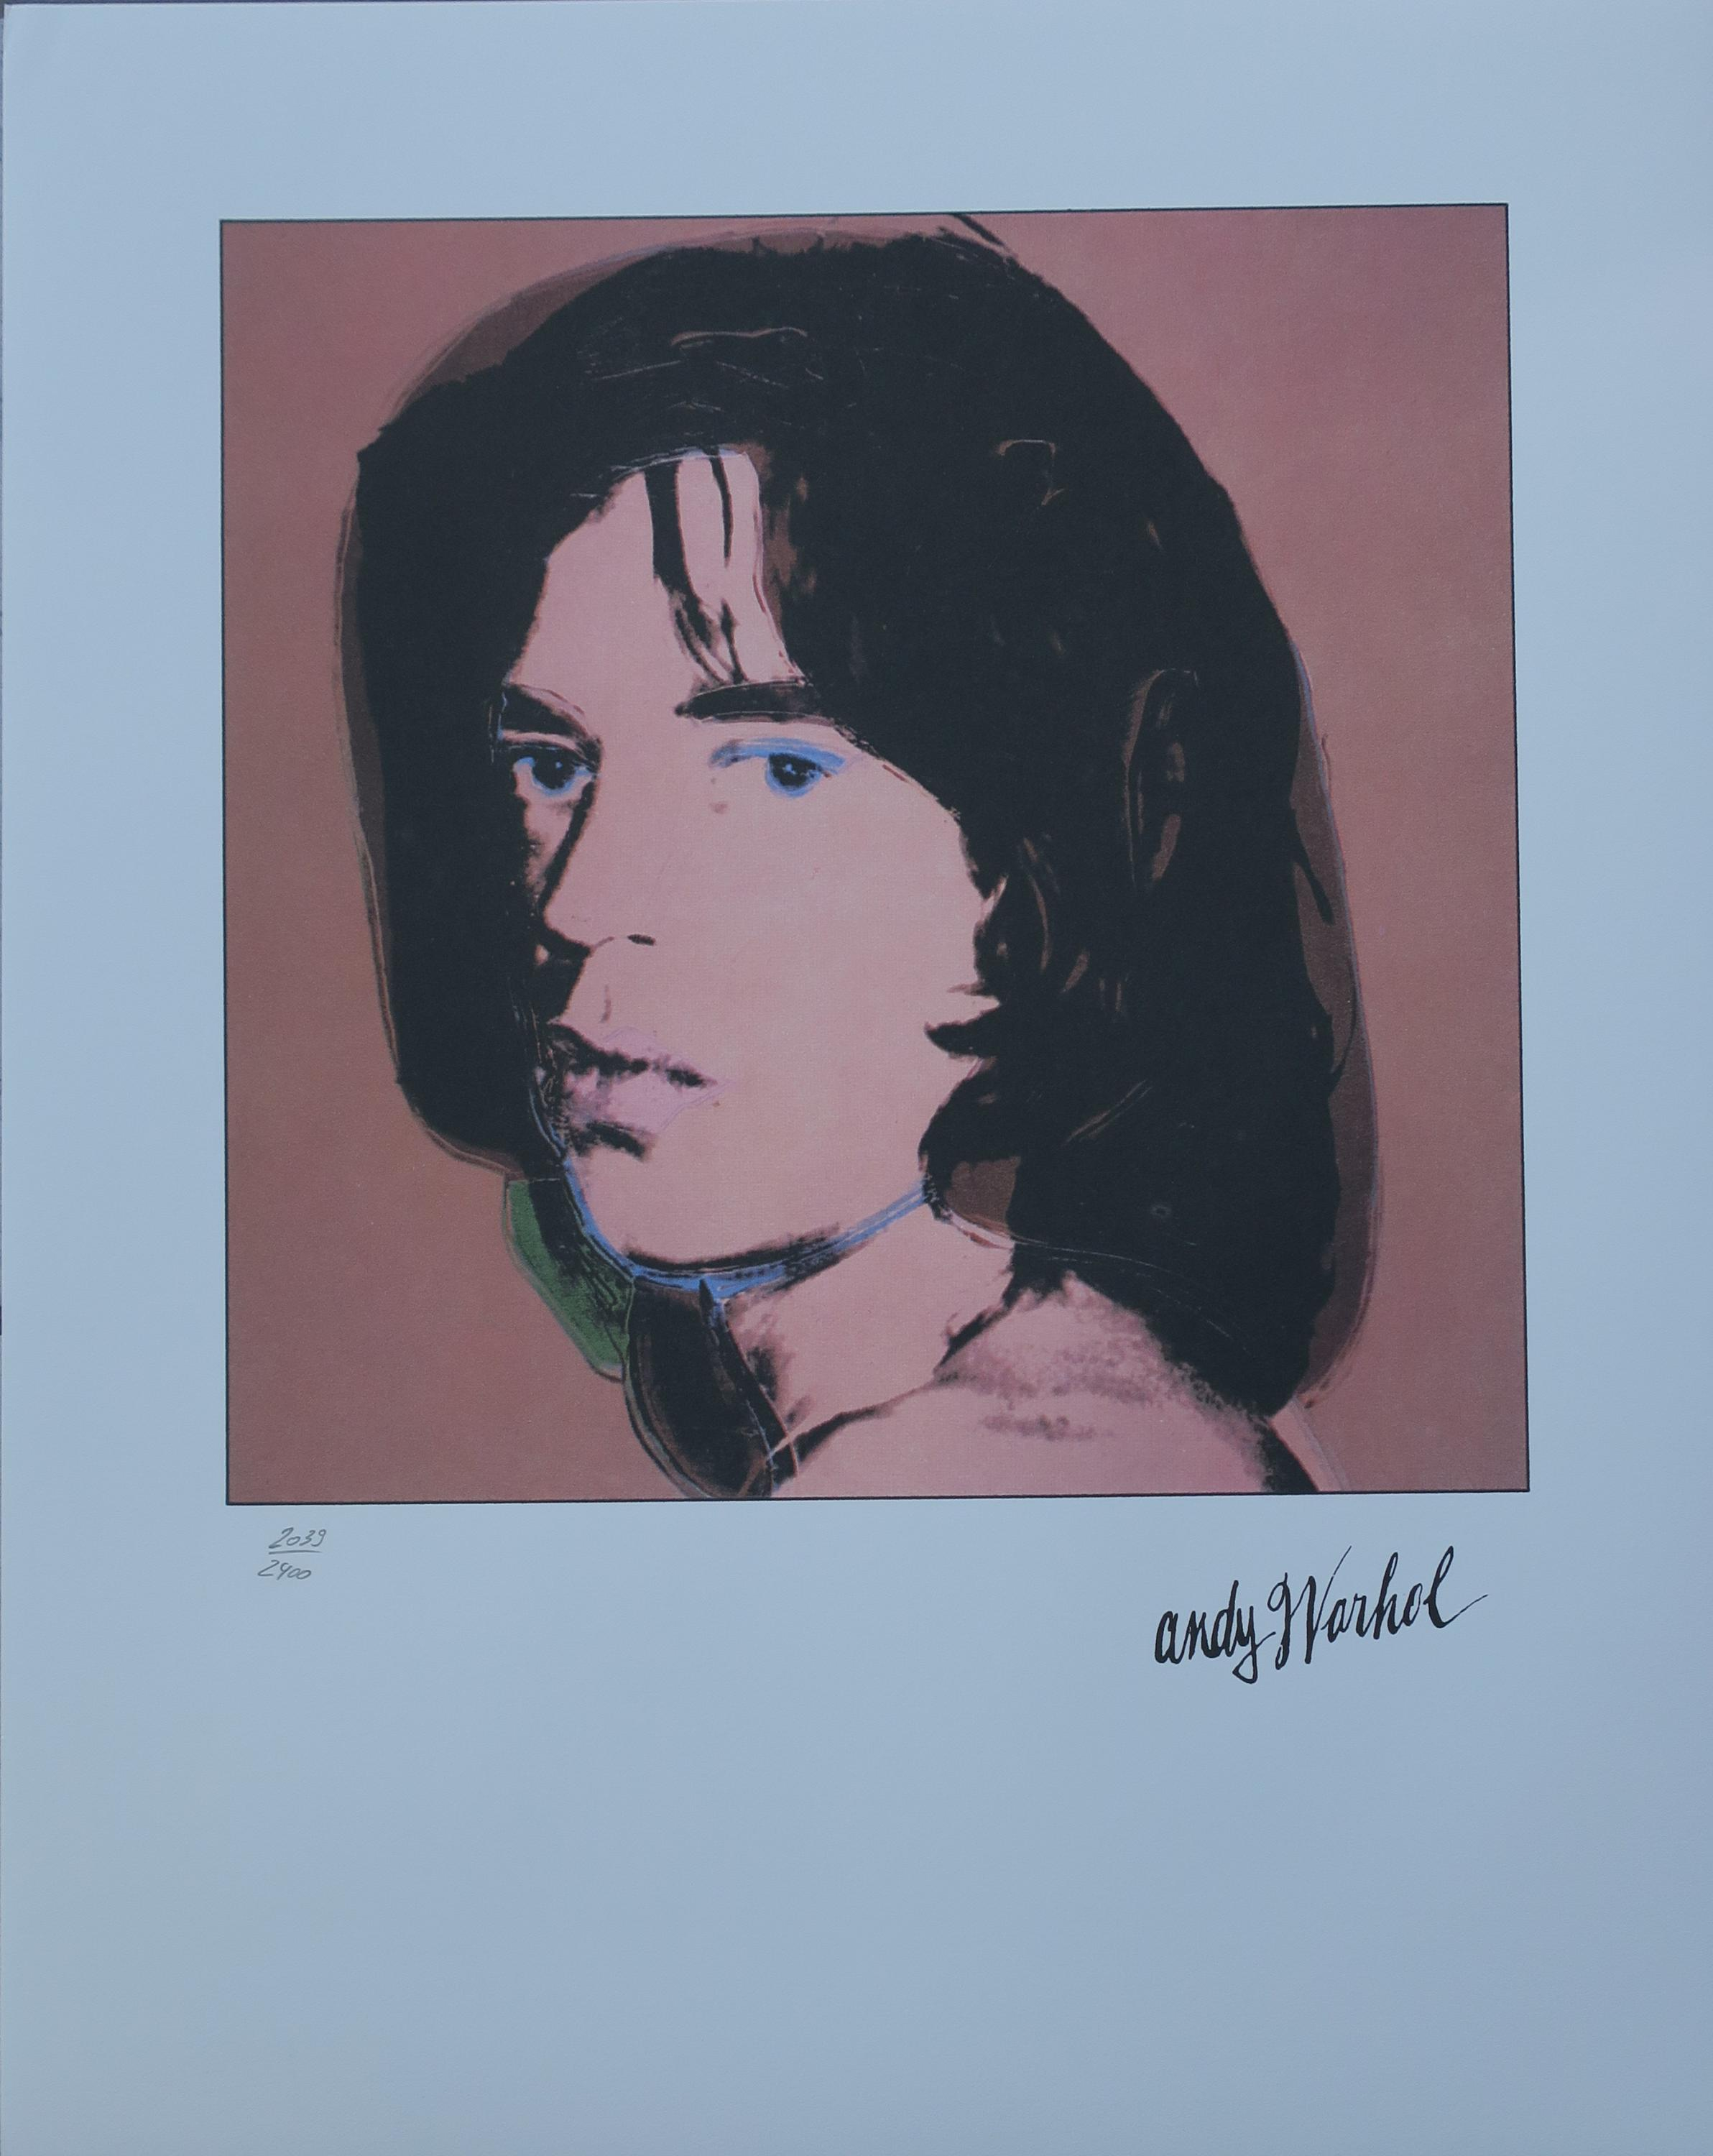 Charitybuzz: Mick Jagger Lithograph by Andy Warhol - Lot